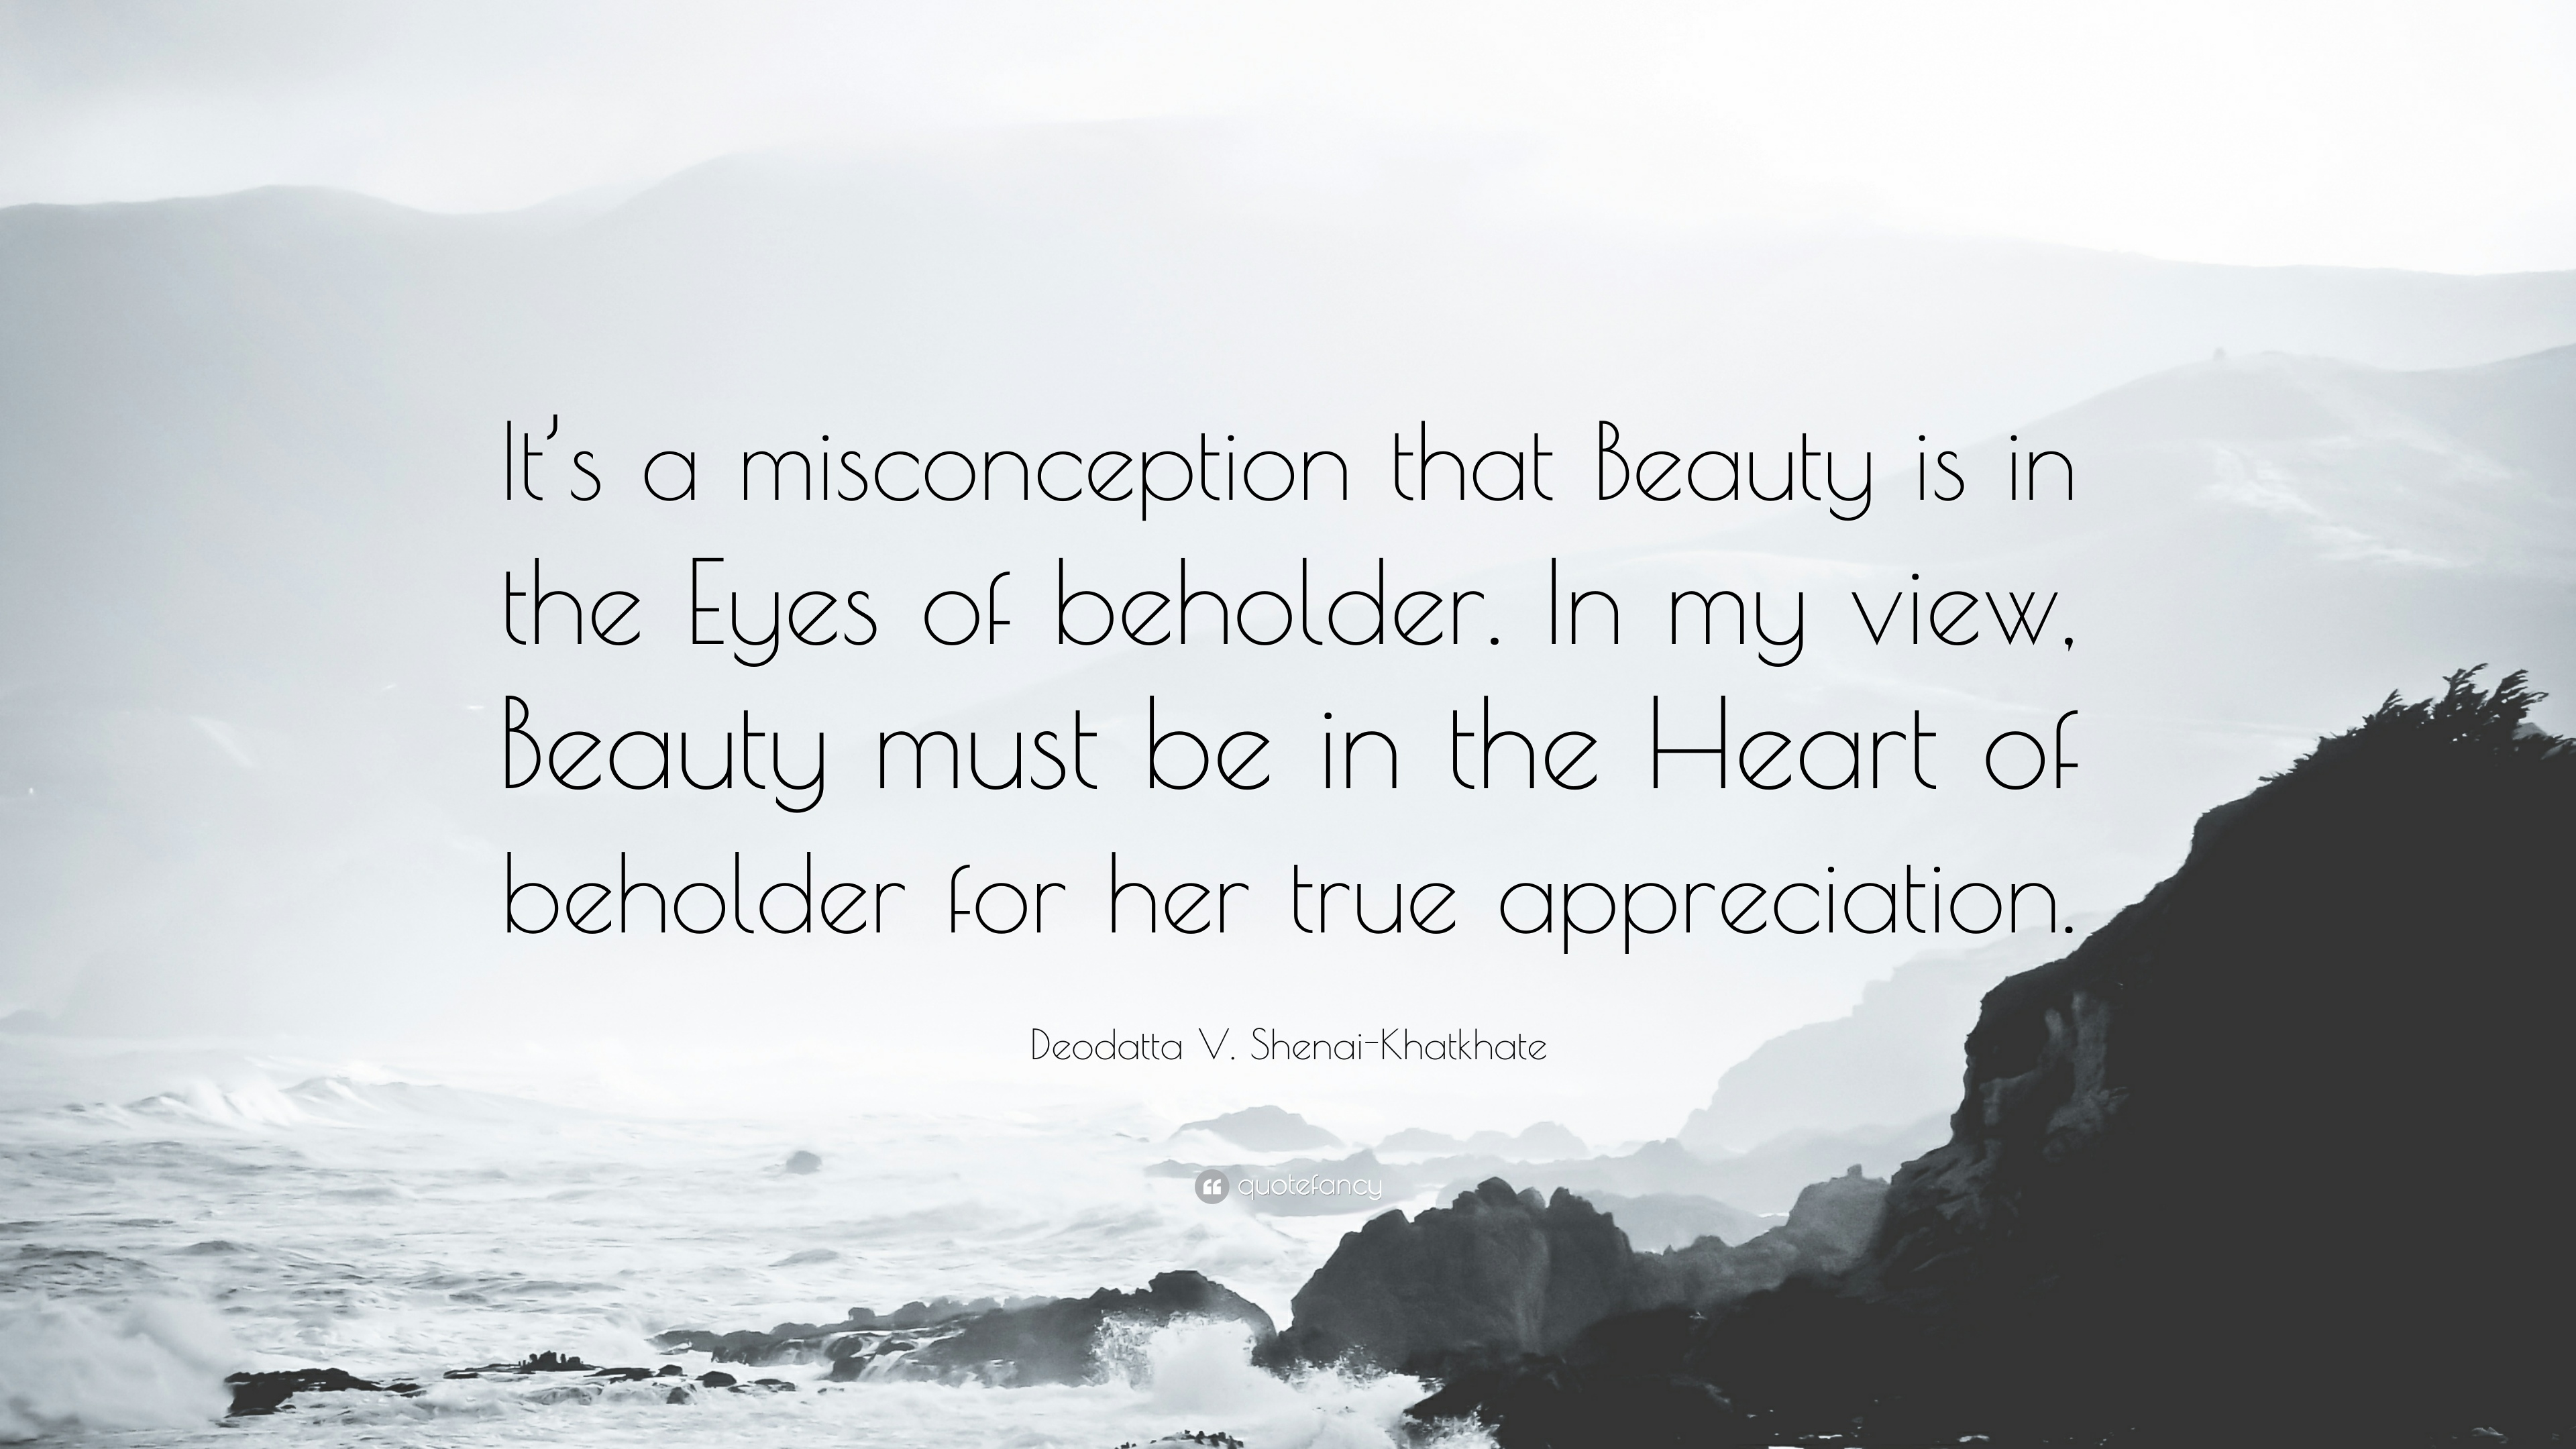 appreciation quotes its a misconception that beauty is in the eyes of beholder